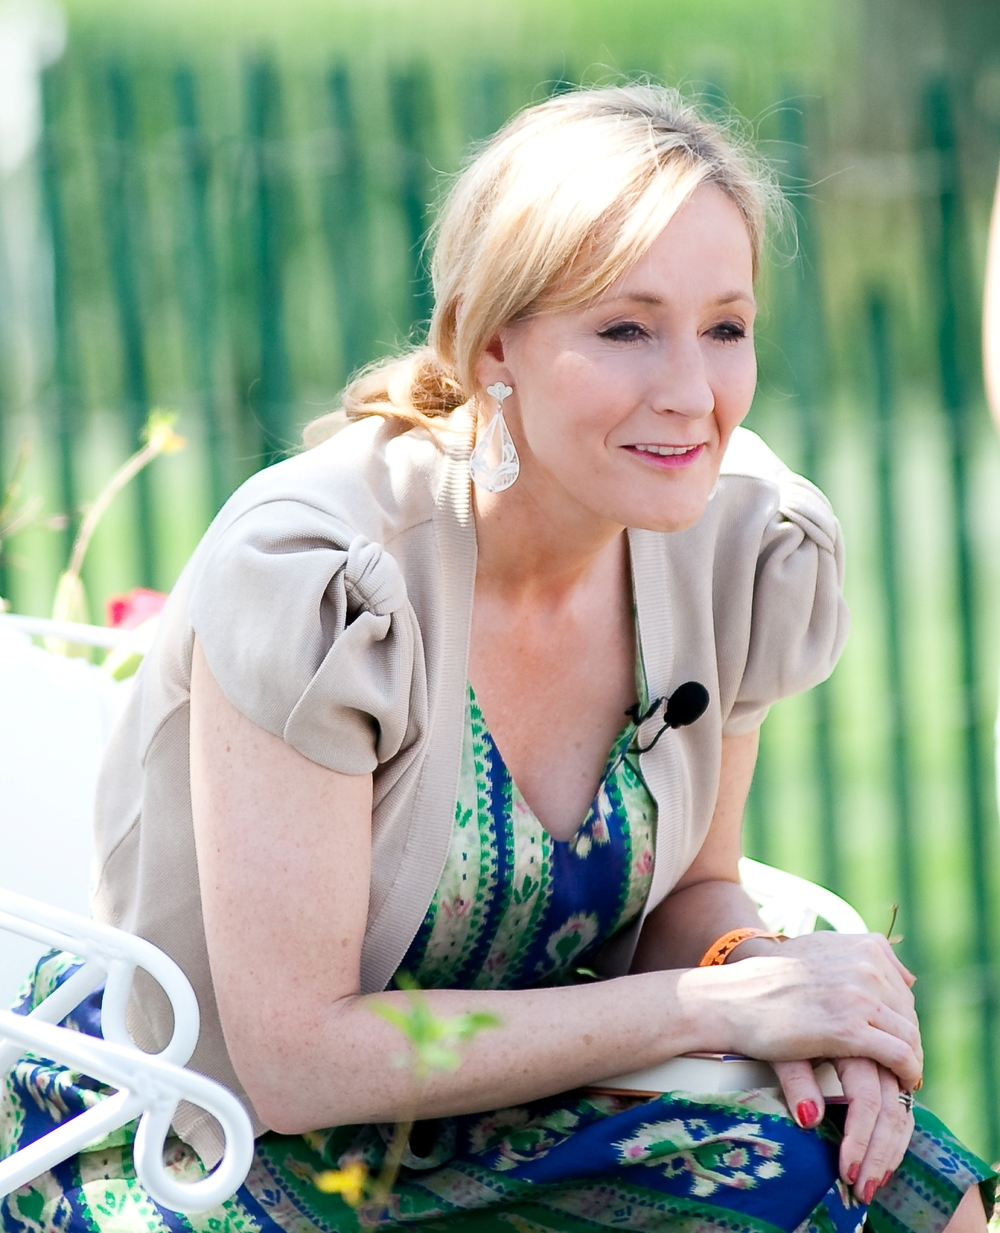 Harry Potter author J.K. Rowling. Credit: Daniel Ogren via Wikimedia Commons.